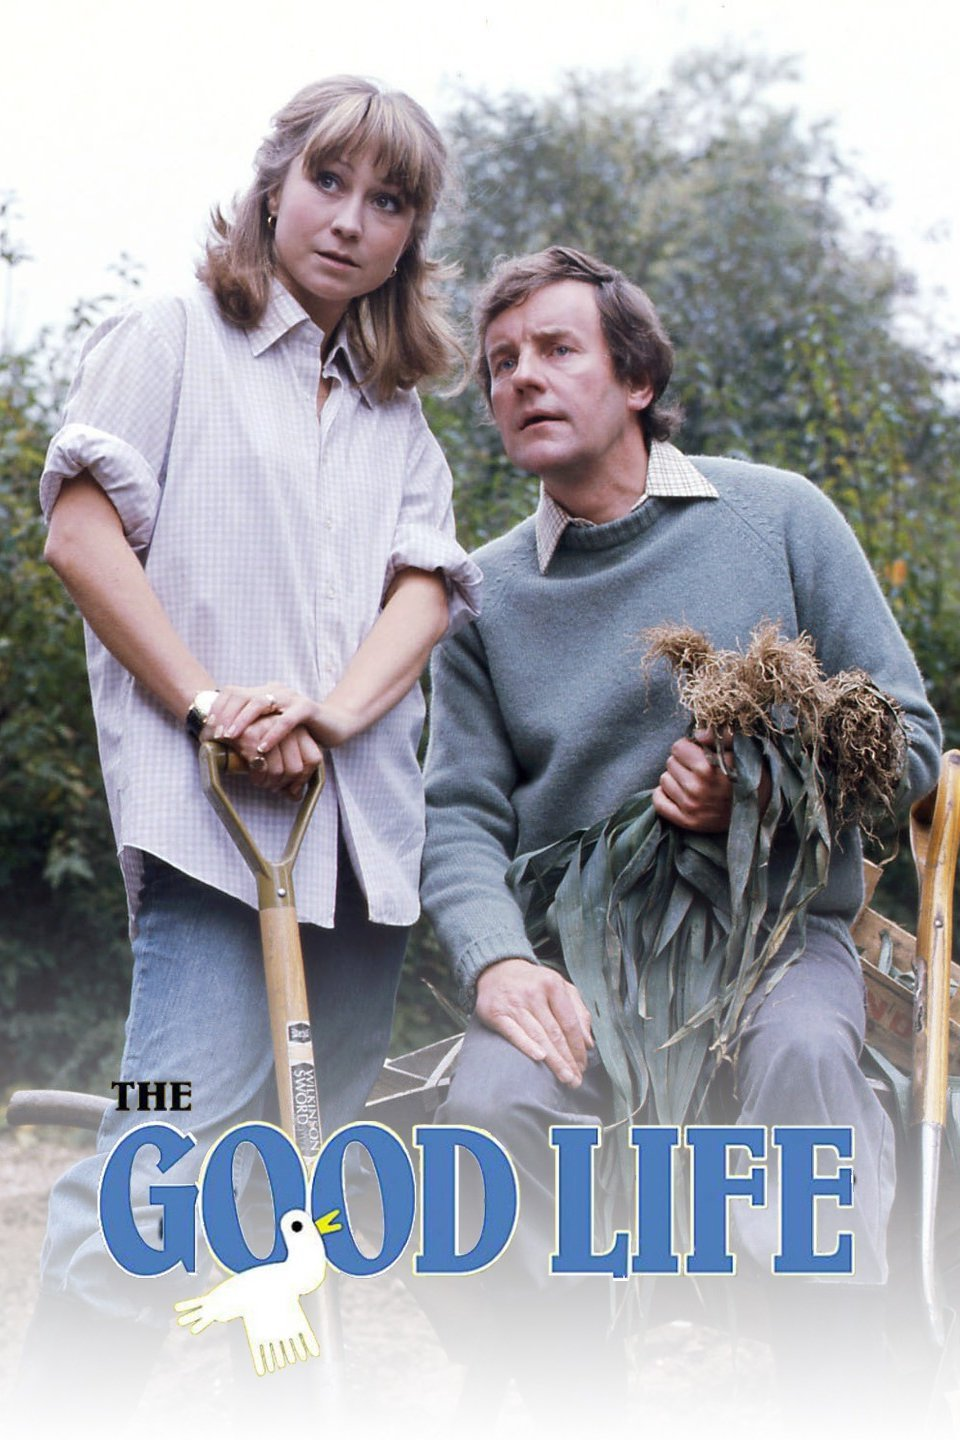 No macrame was produced in the process of writing this article. The Good Life comes from the cosy three channel English world in the 1970s. It does not exist anymore.